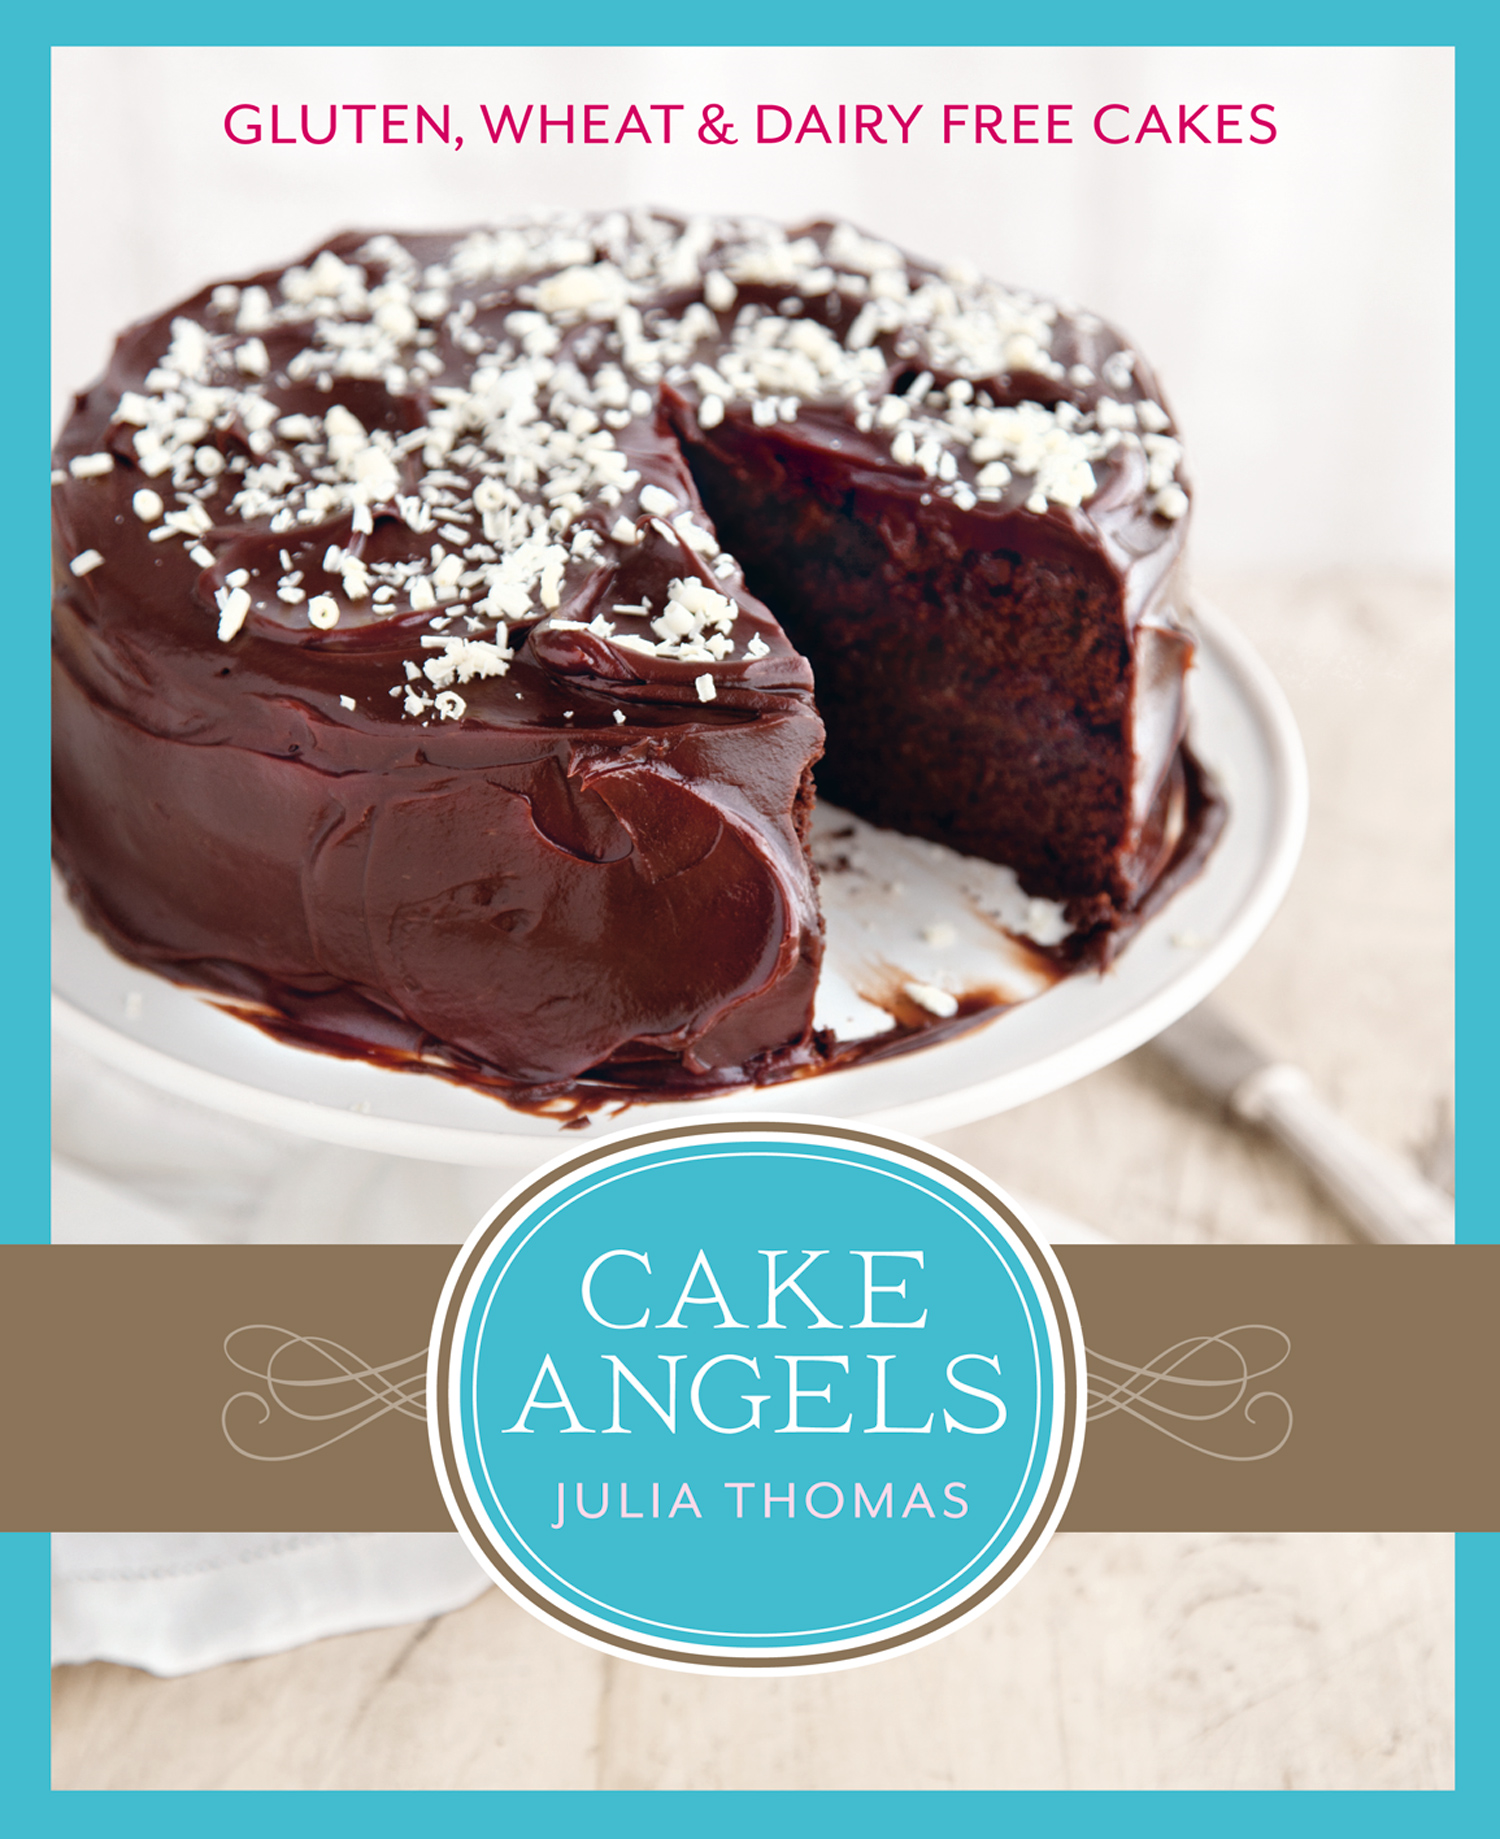 Cake Angels: Amazing gluten, wheat and dairy free cakes By: Julia Thomas